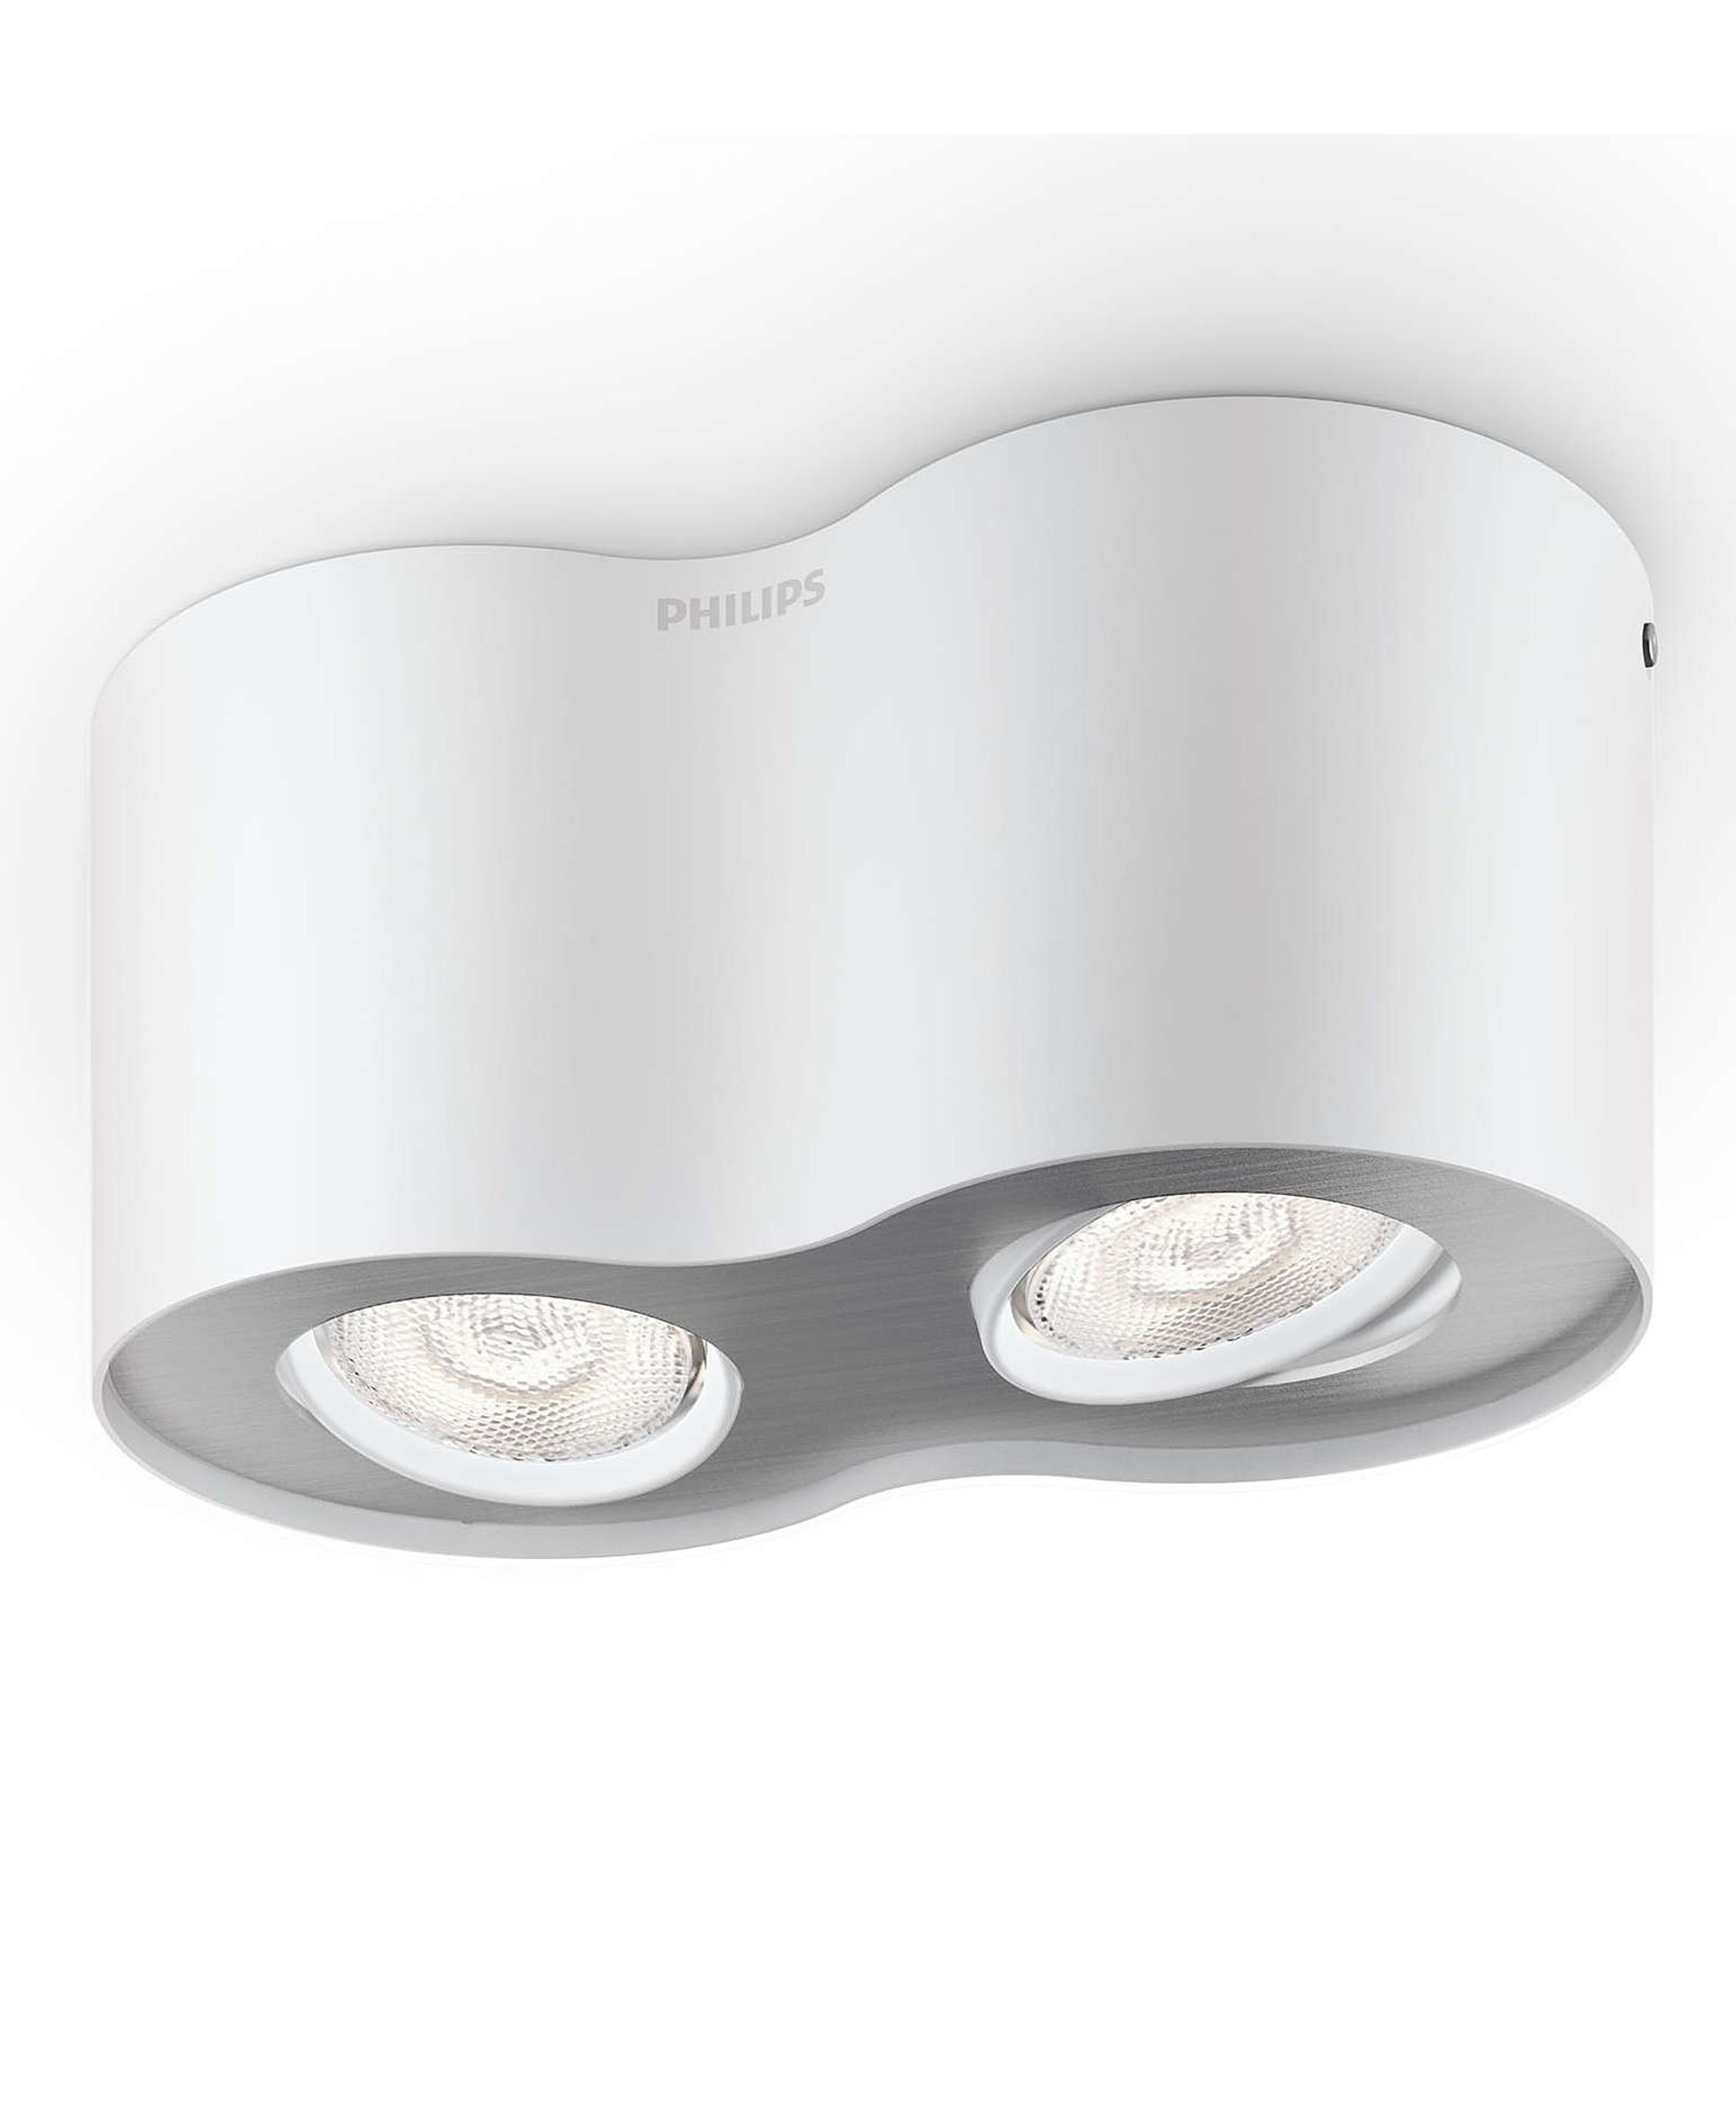 Philips myLiving Phase Weiß LED Spot 53302/31/16